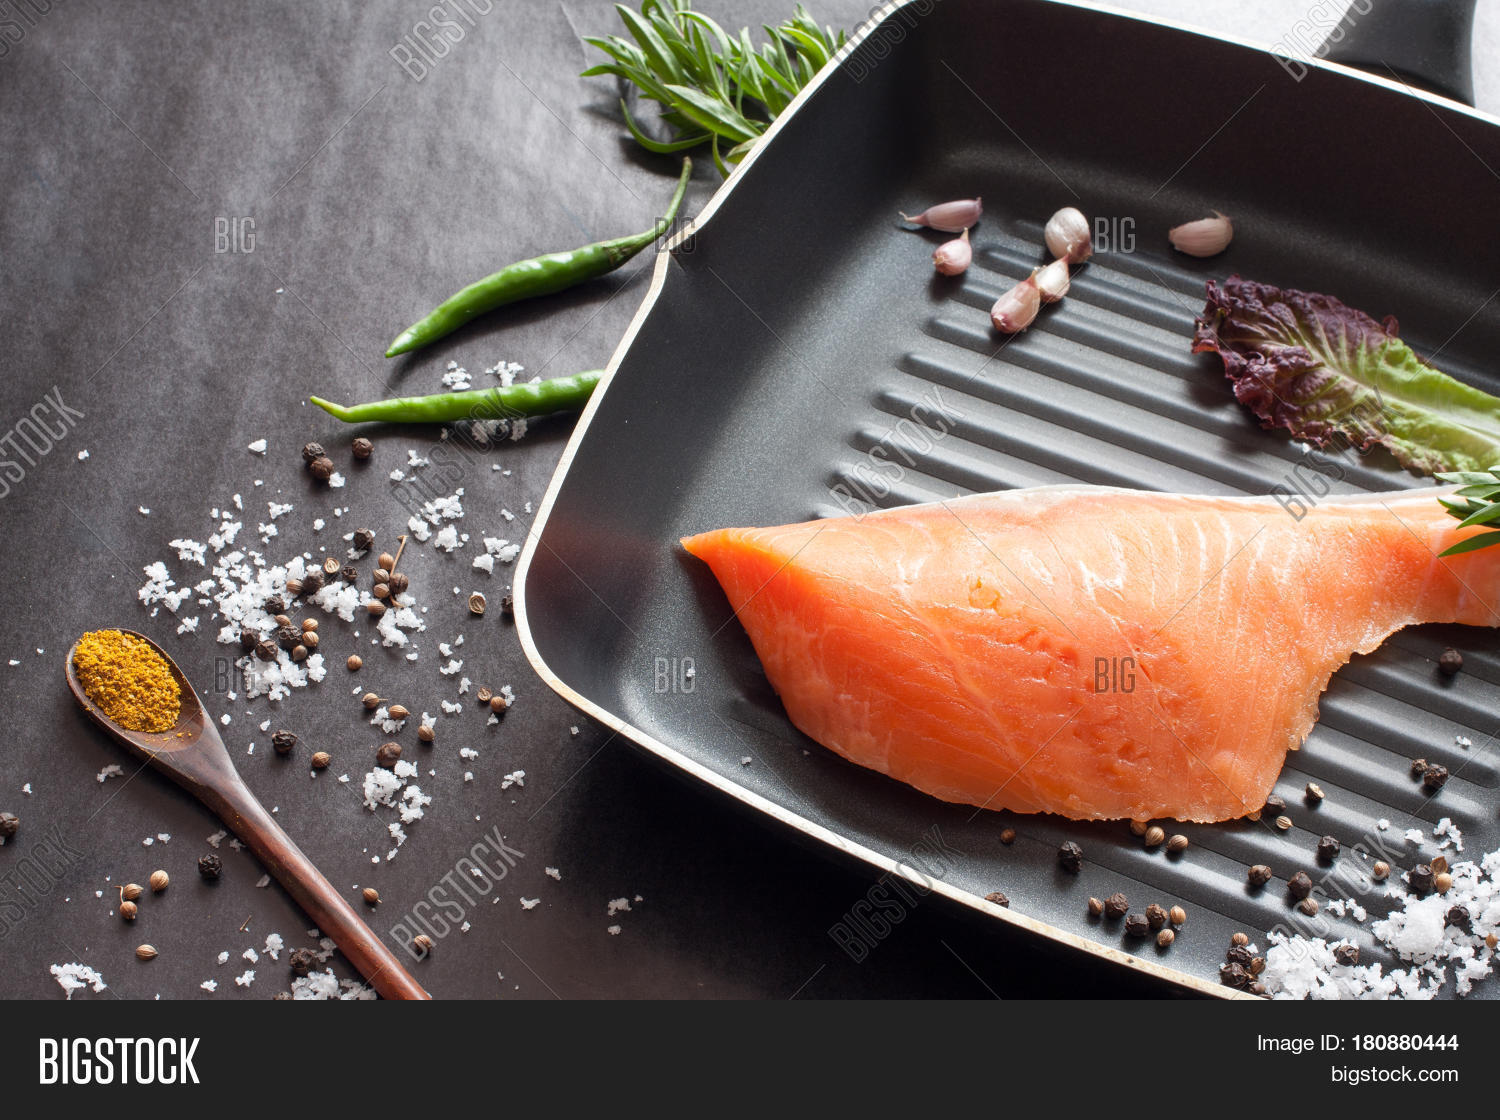 How to cook salmon fillet on grill pan